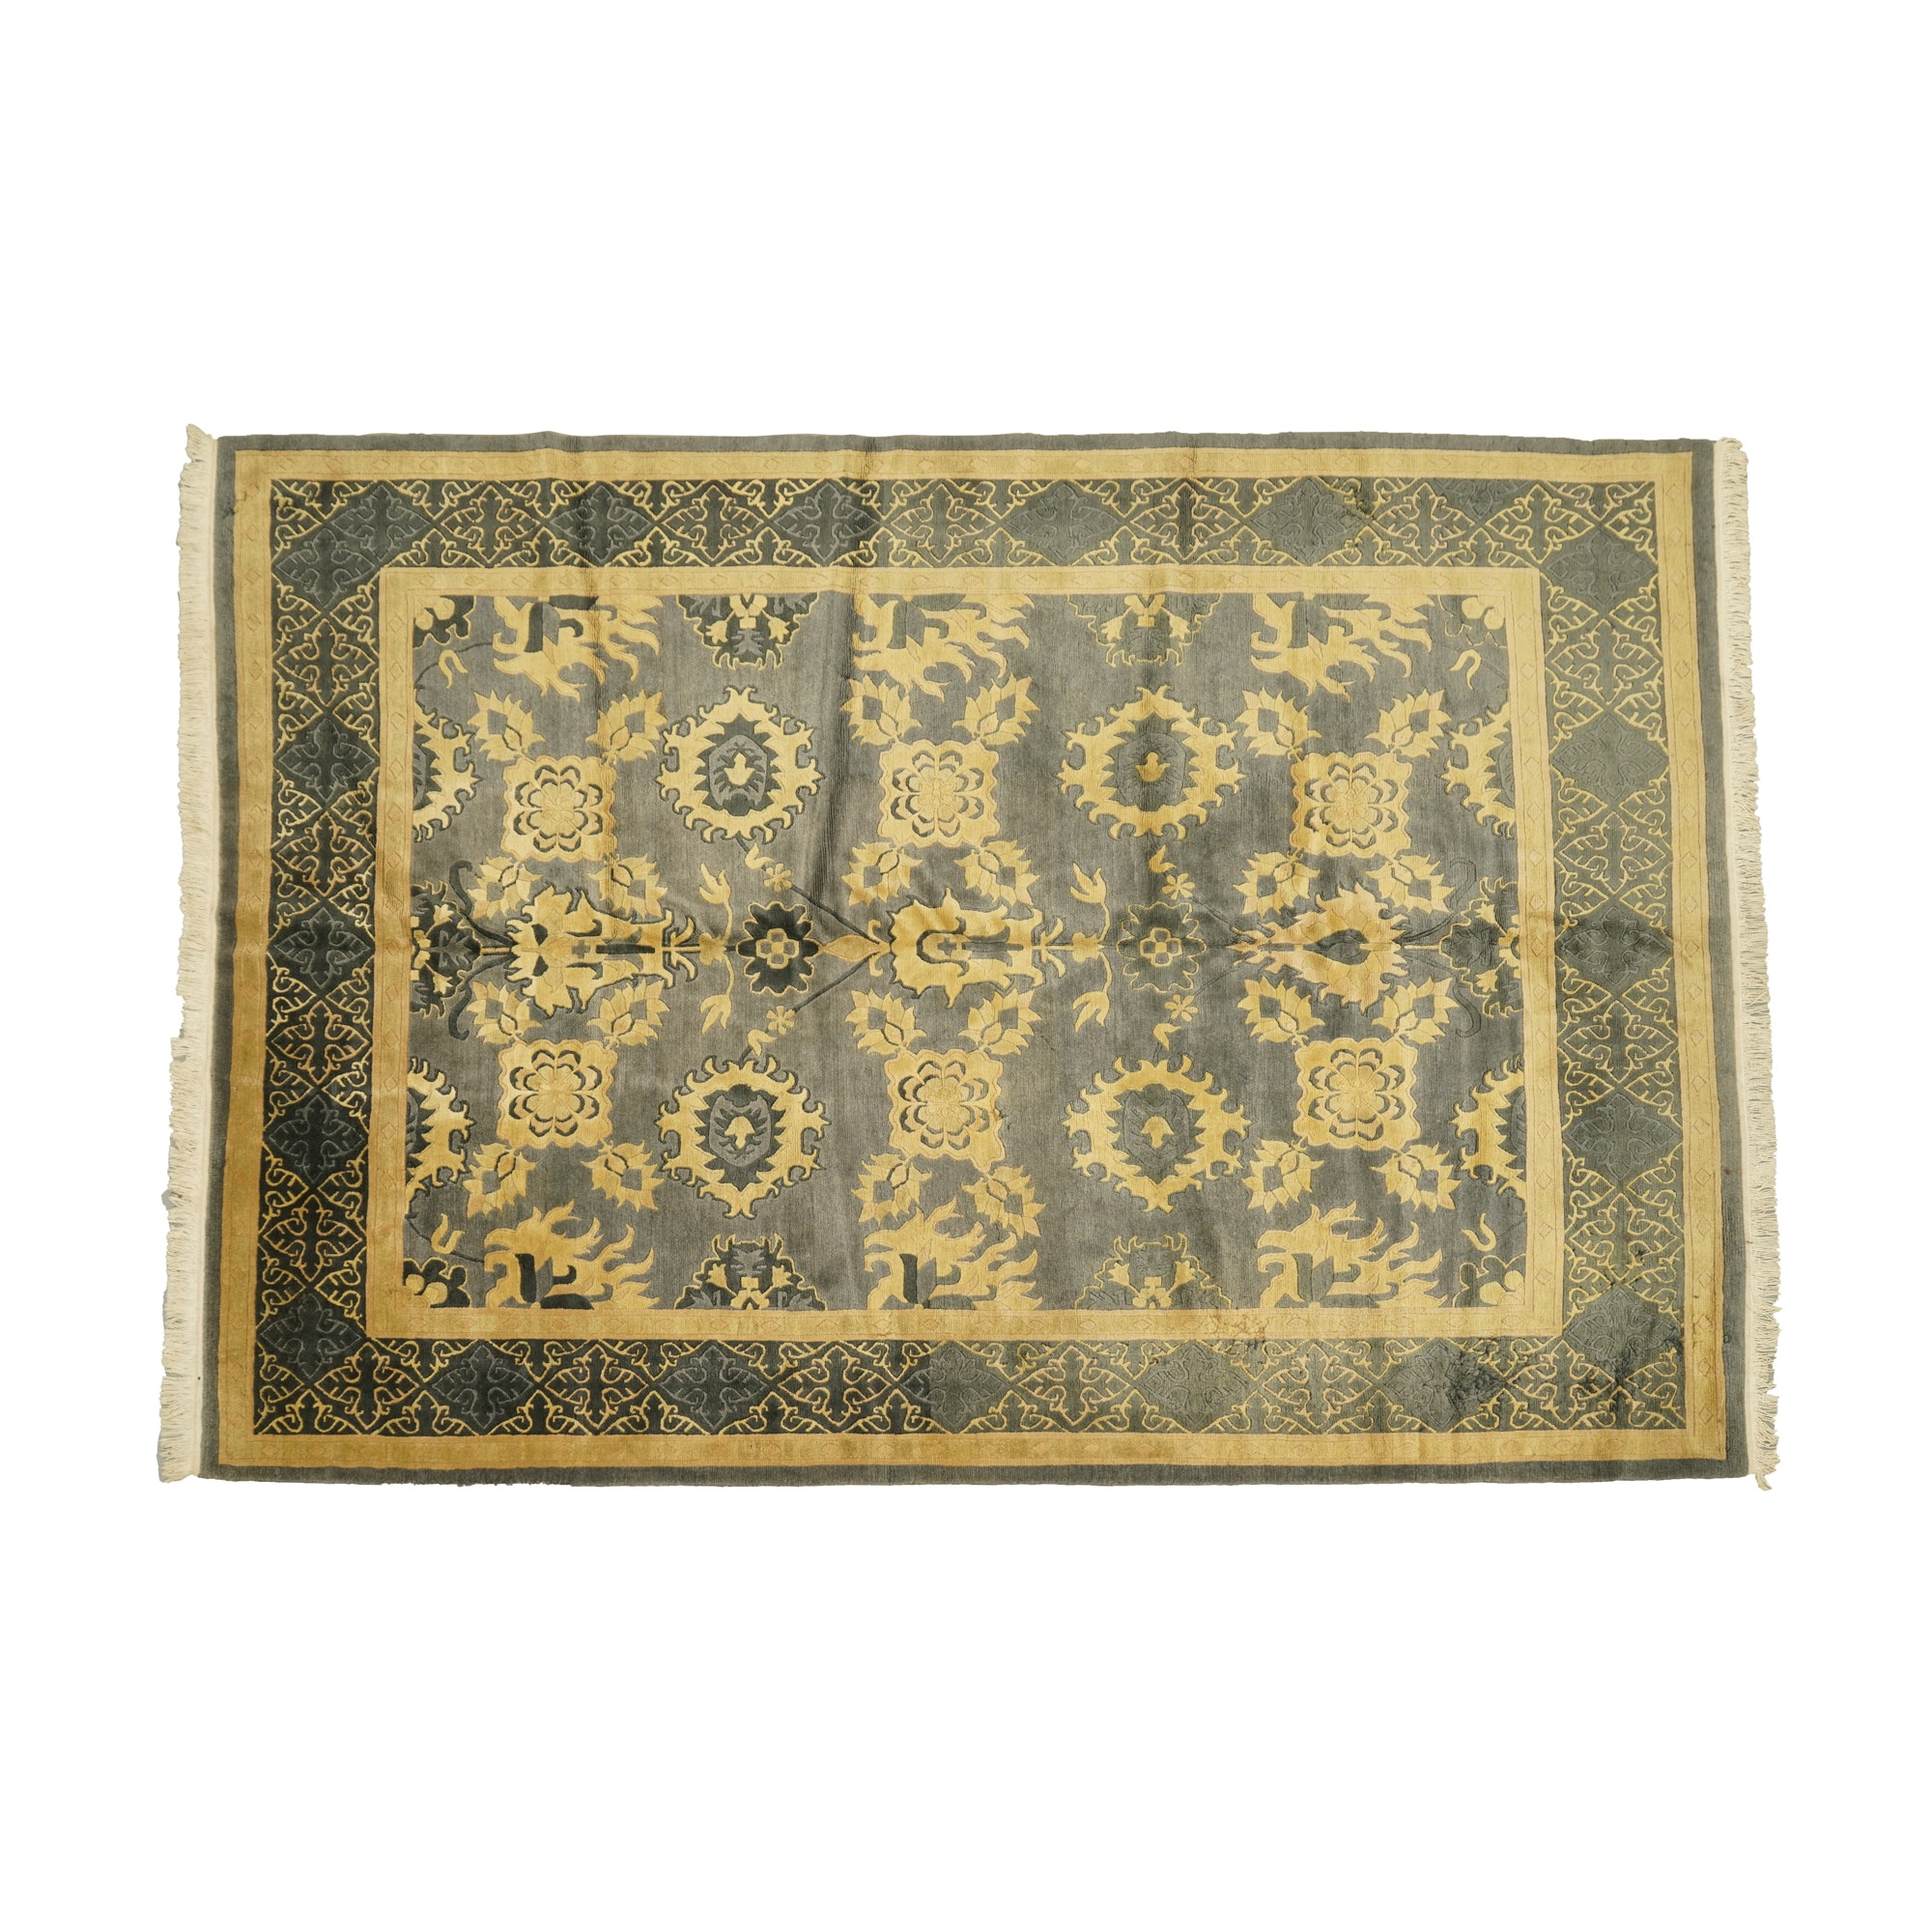 Hand-Knotted and Carved Nepalese Tibetan Area Rug